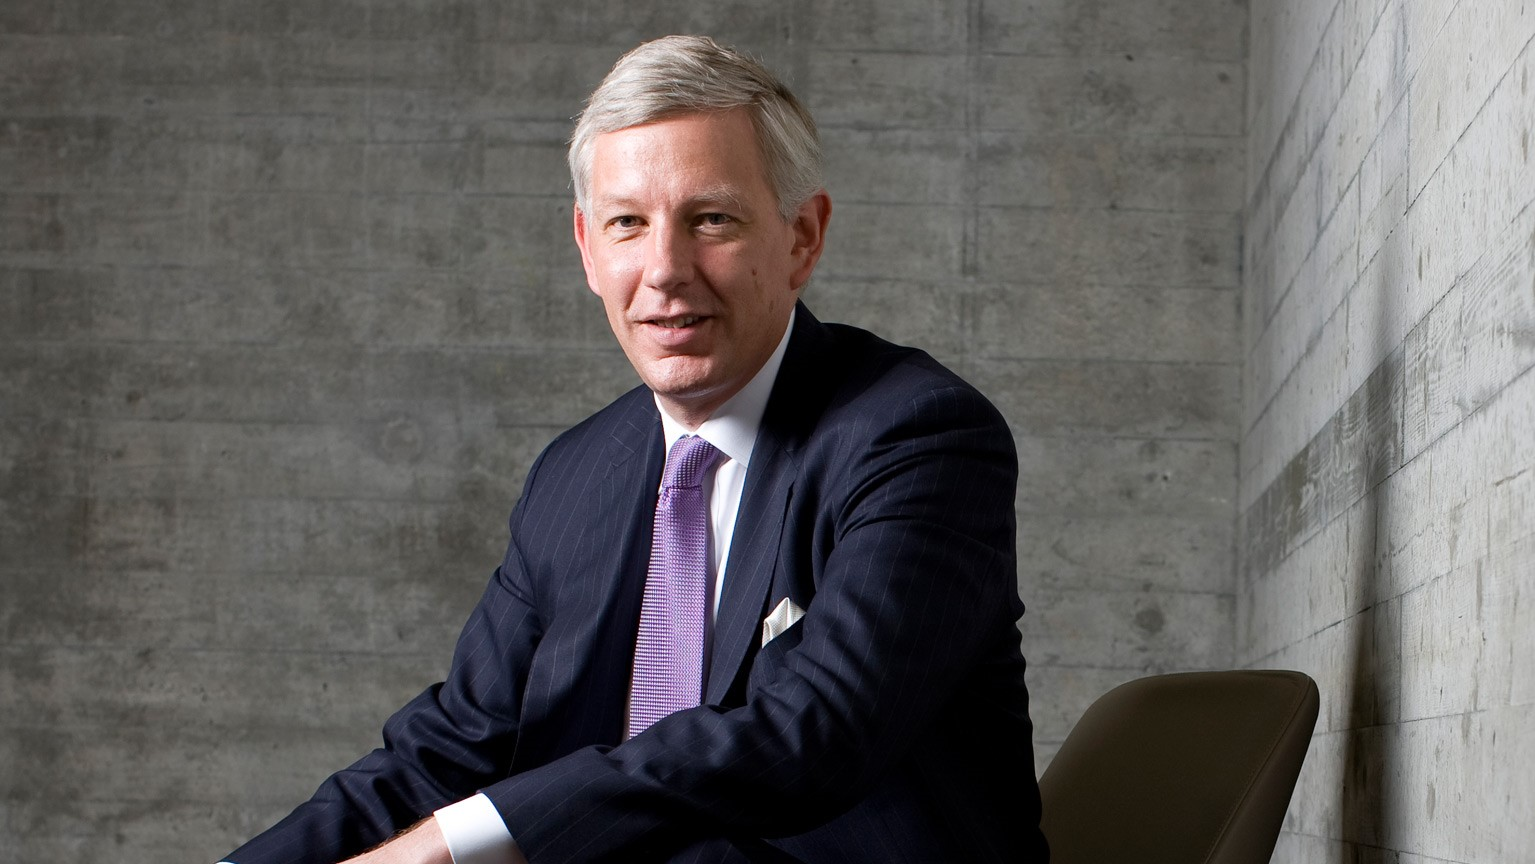 The case for CHROs to focus on strategy and offload admin, with Dominic Barton